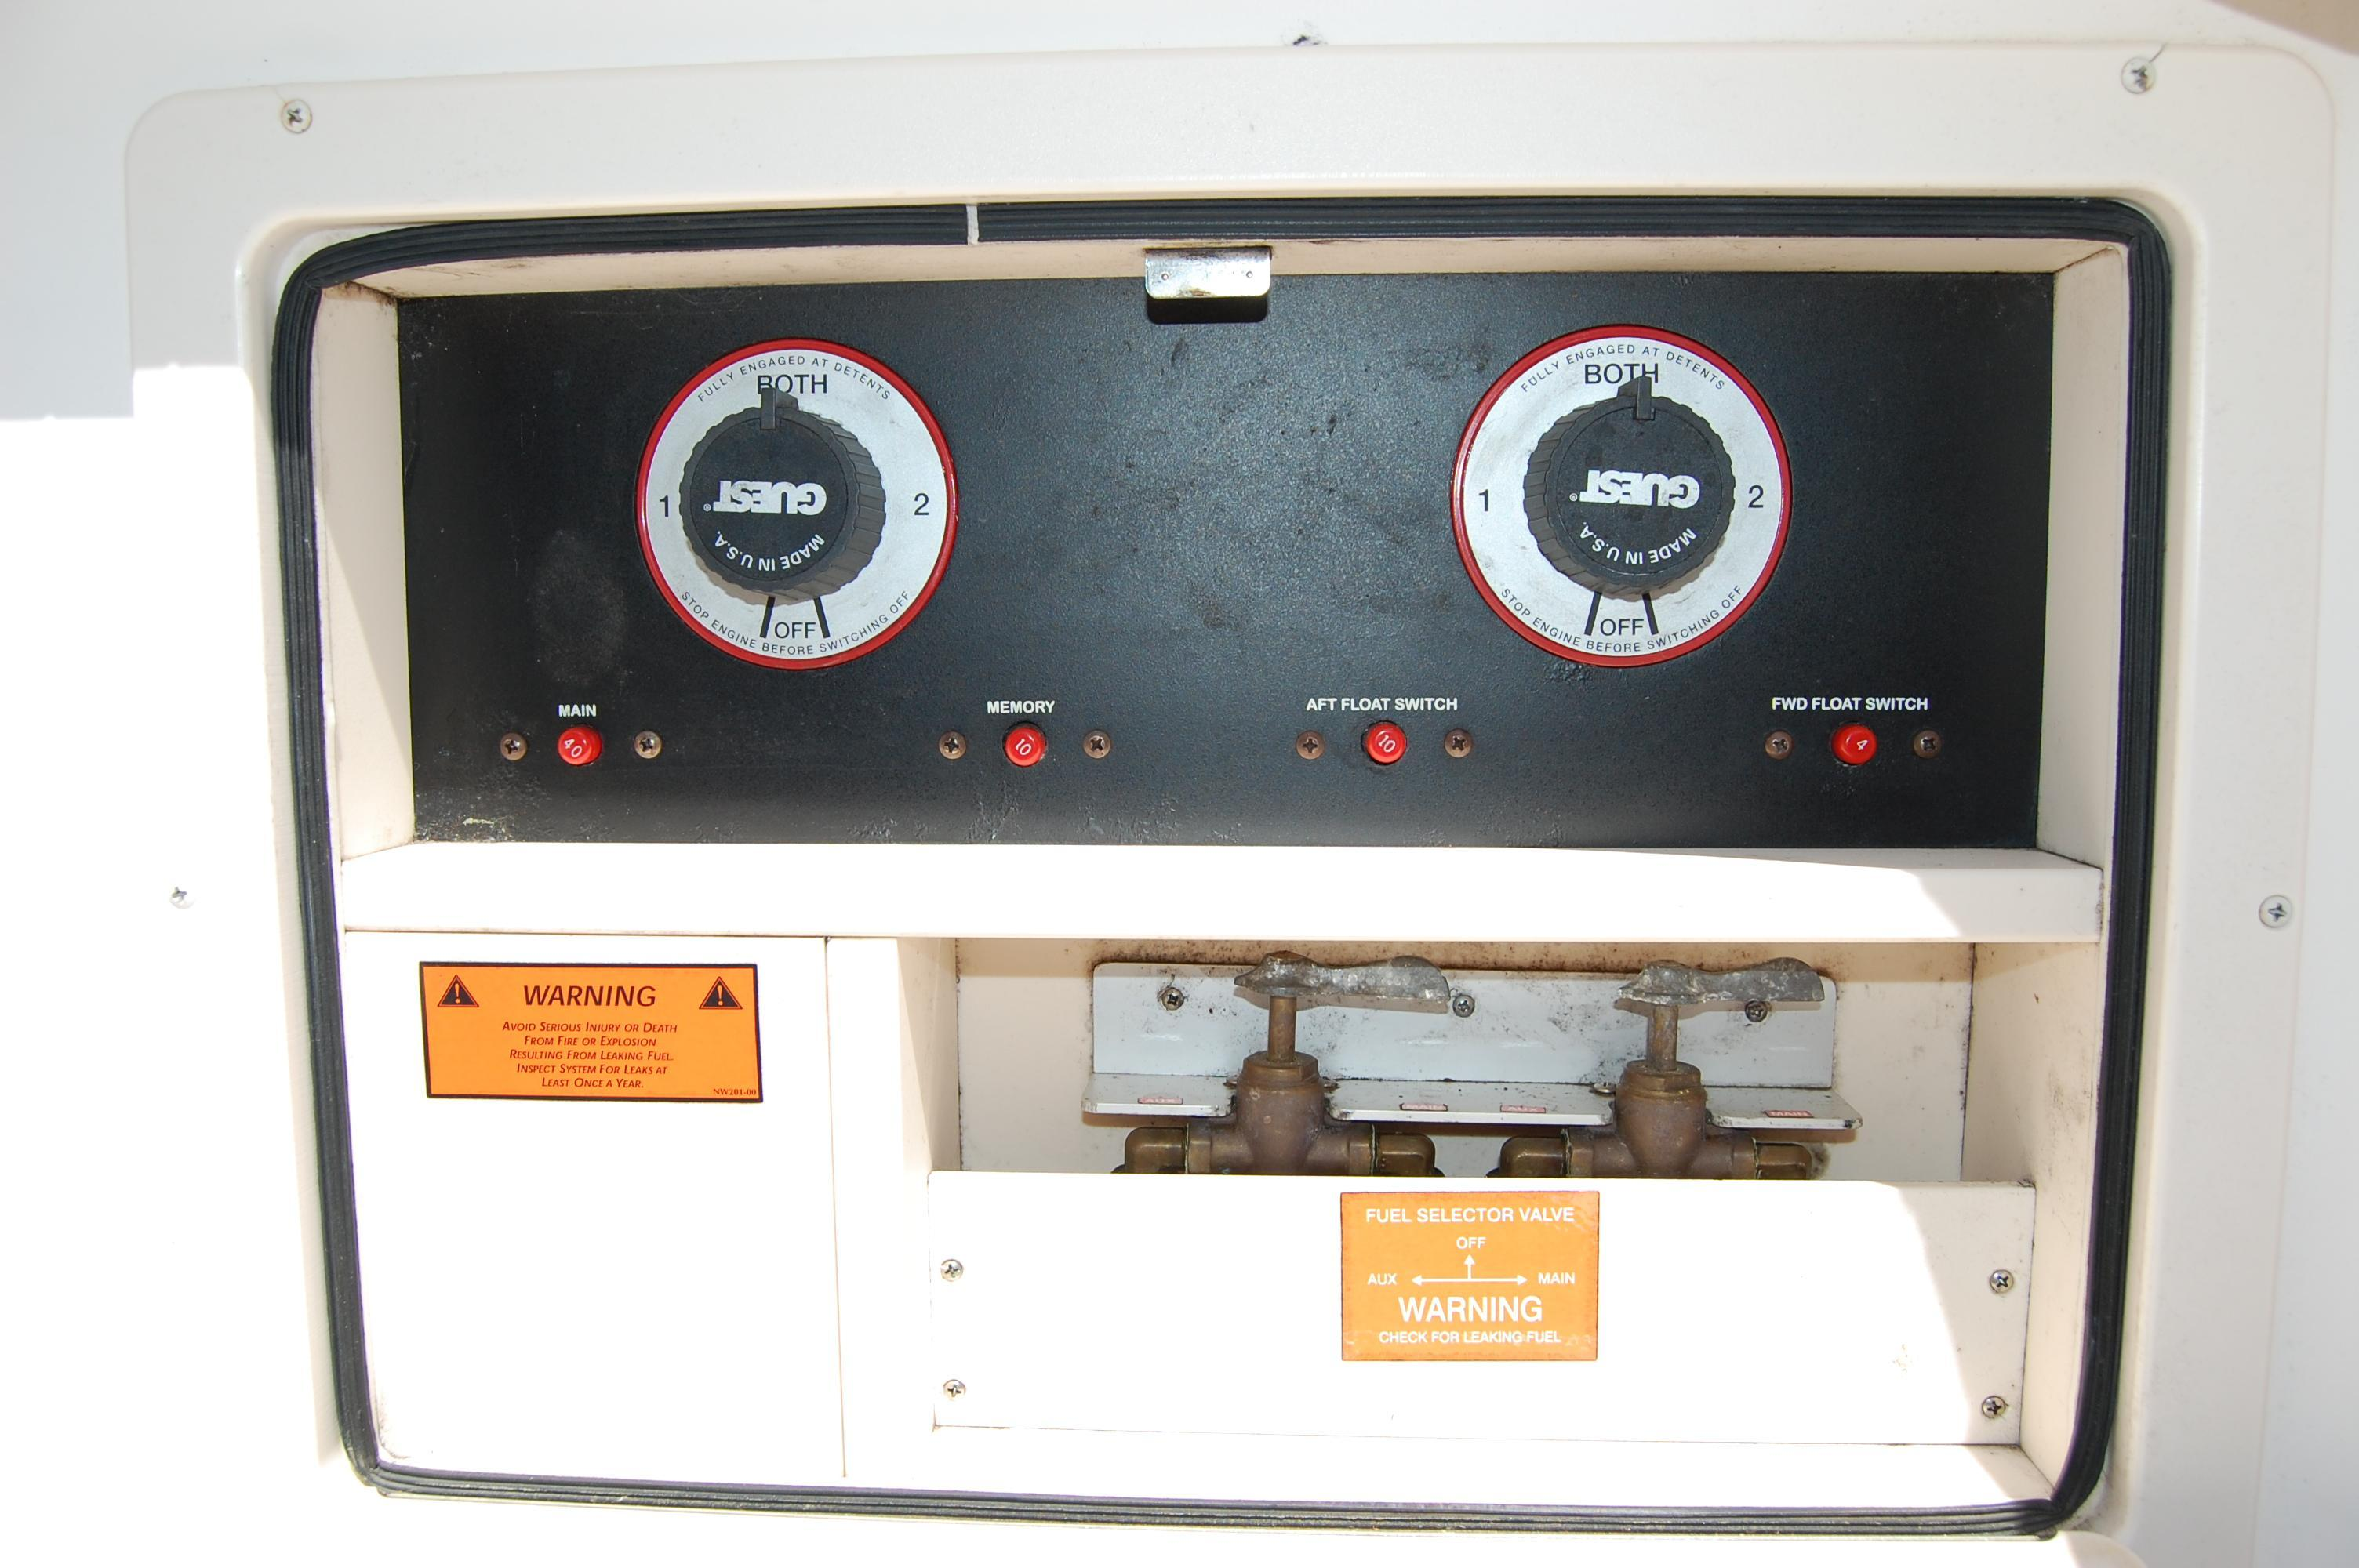 2002 Grady White 330 Express, battery switches